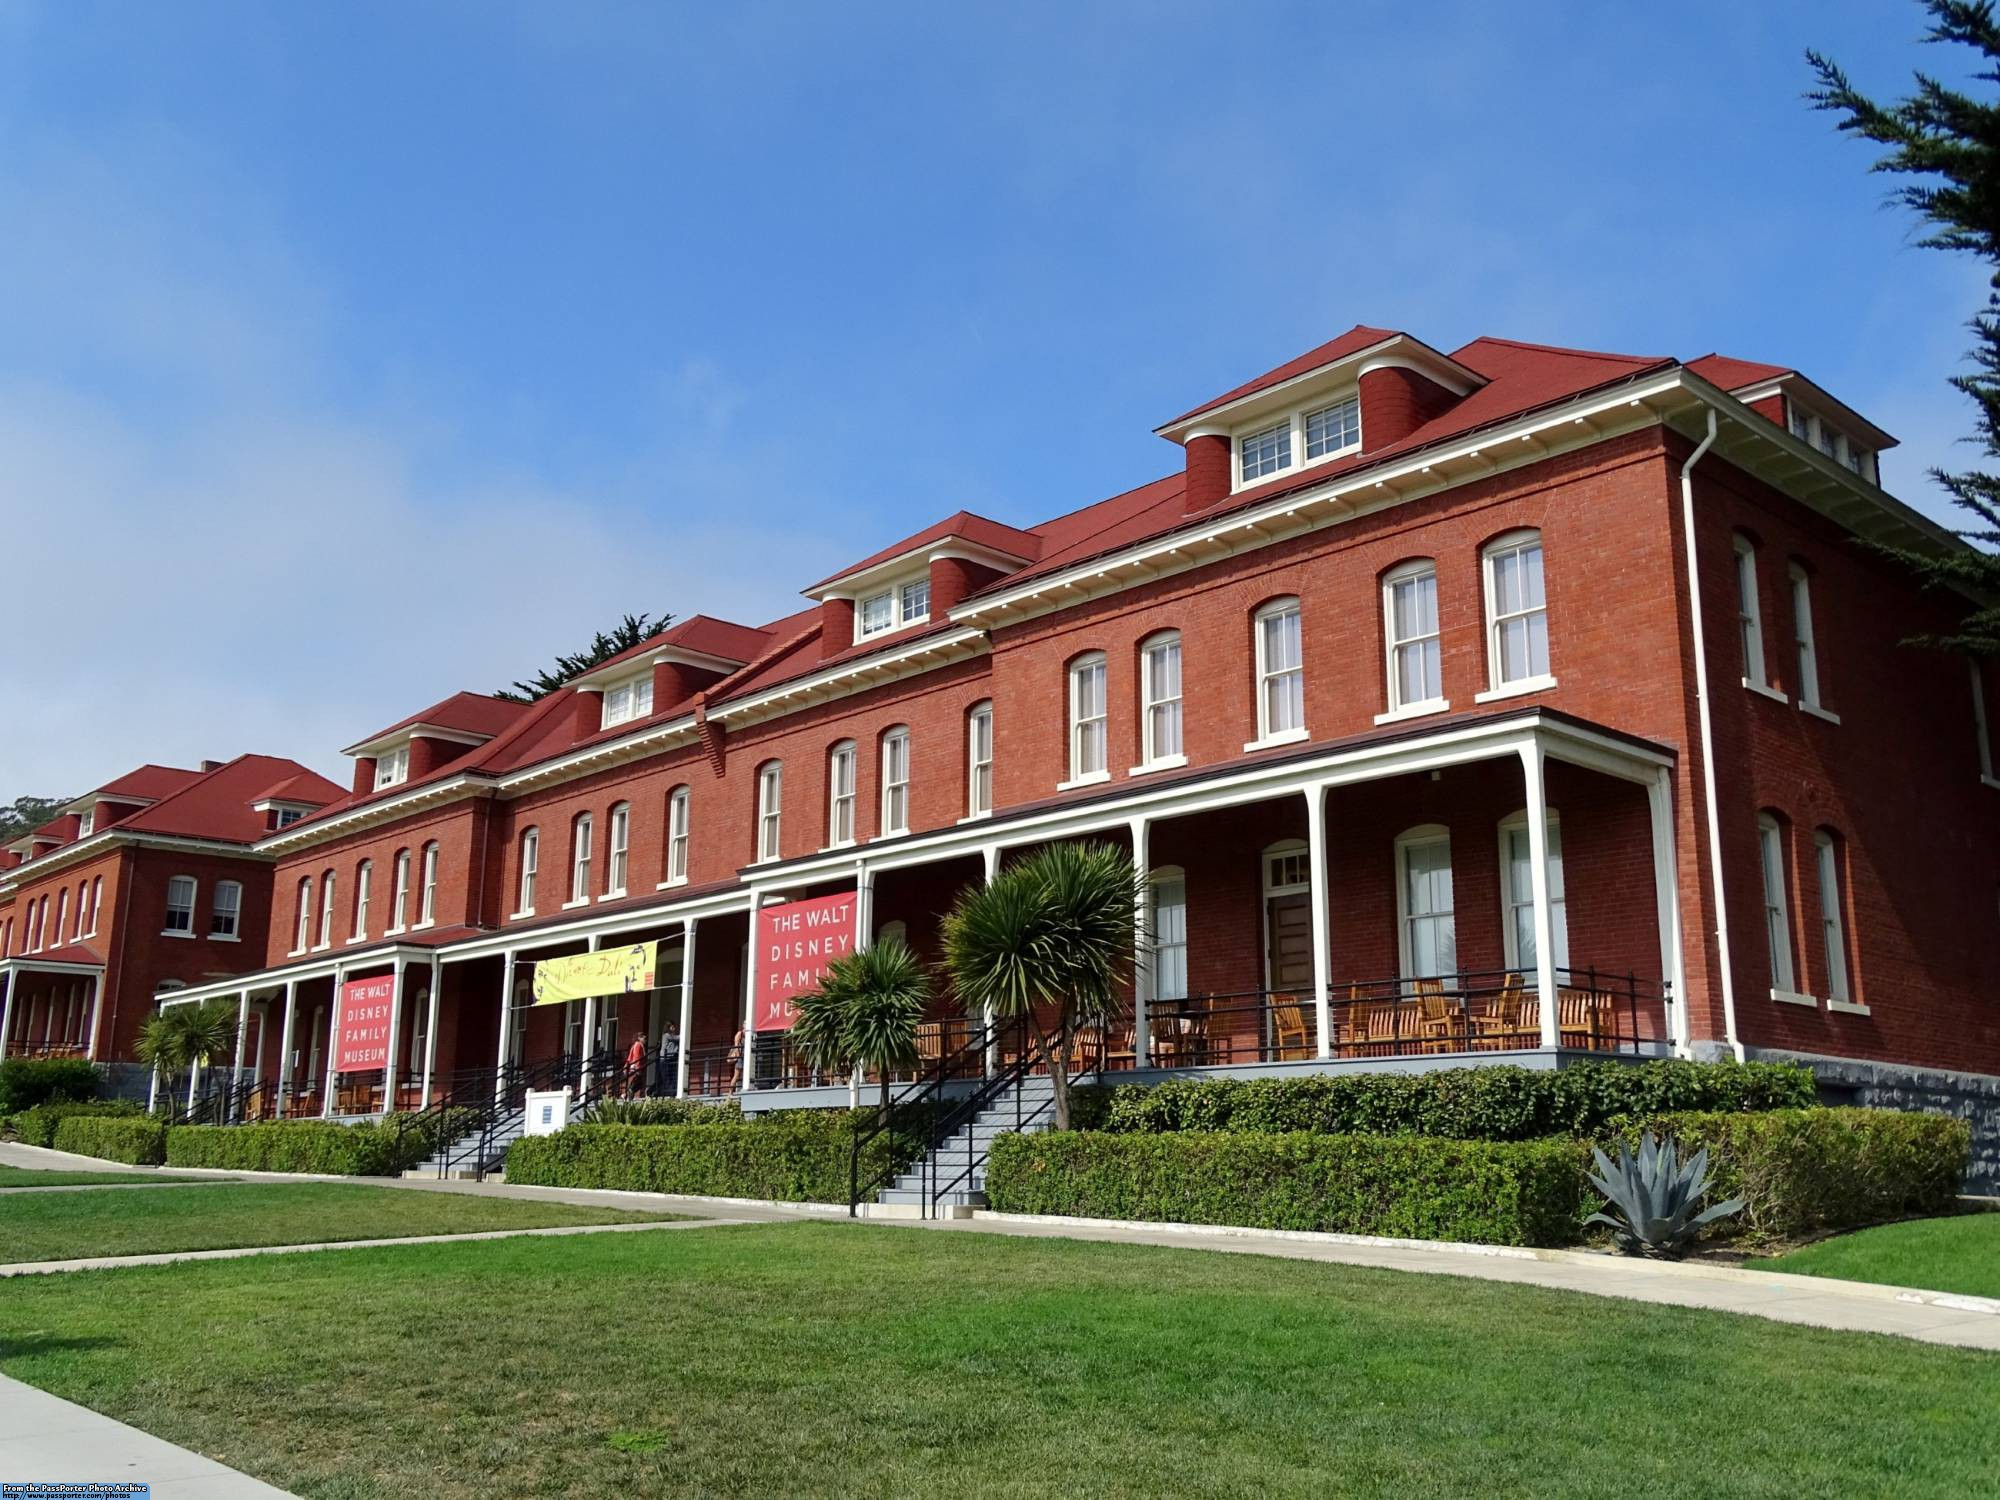 Learn more about Walt Disney at the Walt Disney Family Museum in San Francisco |PassPorter.com